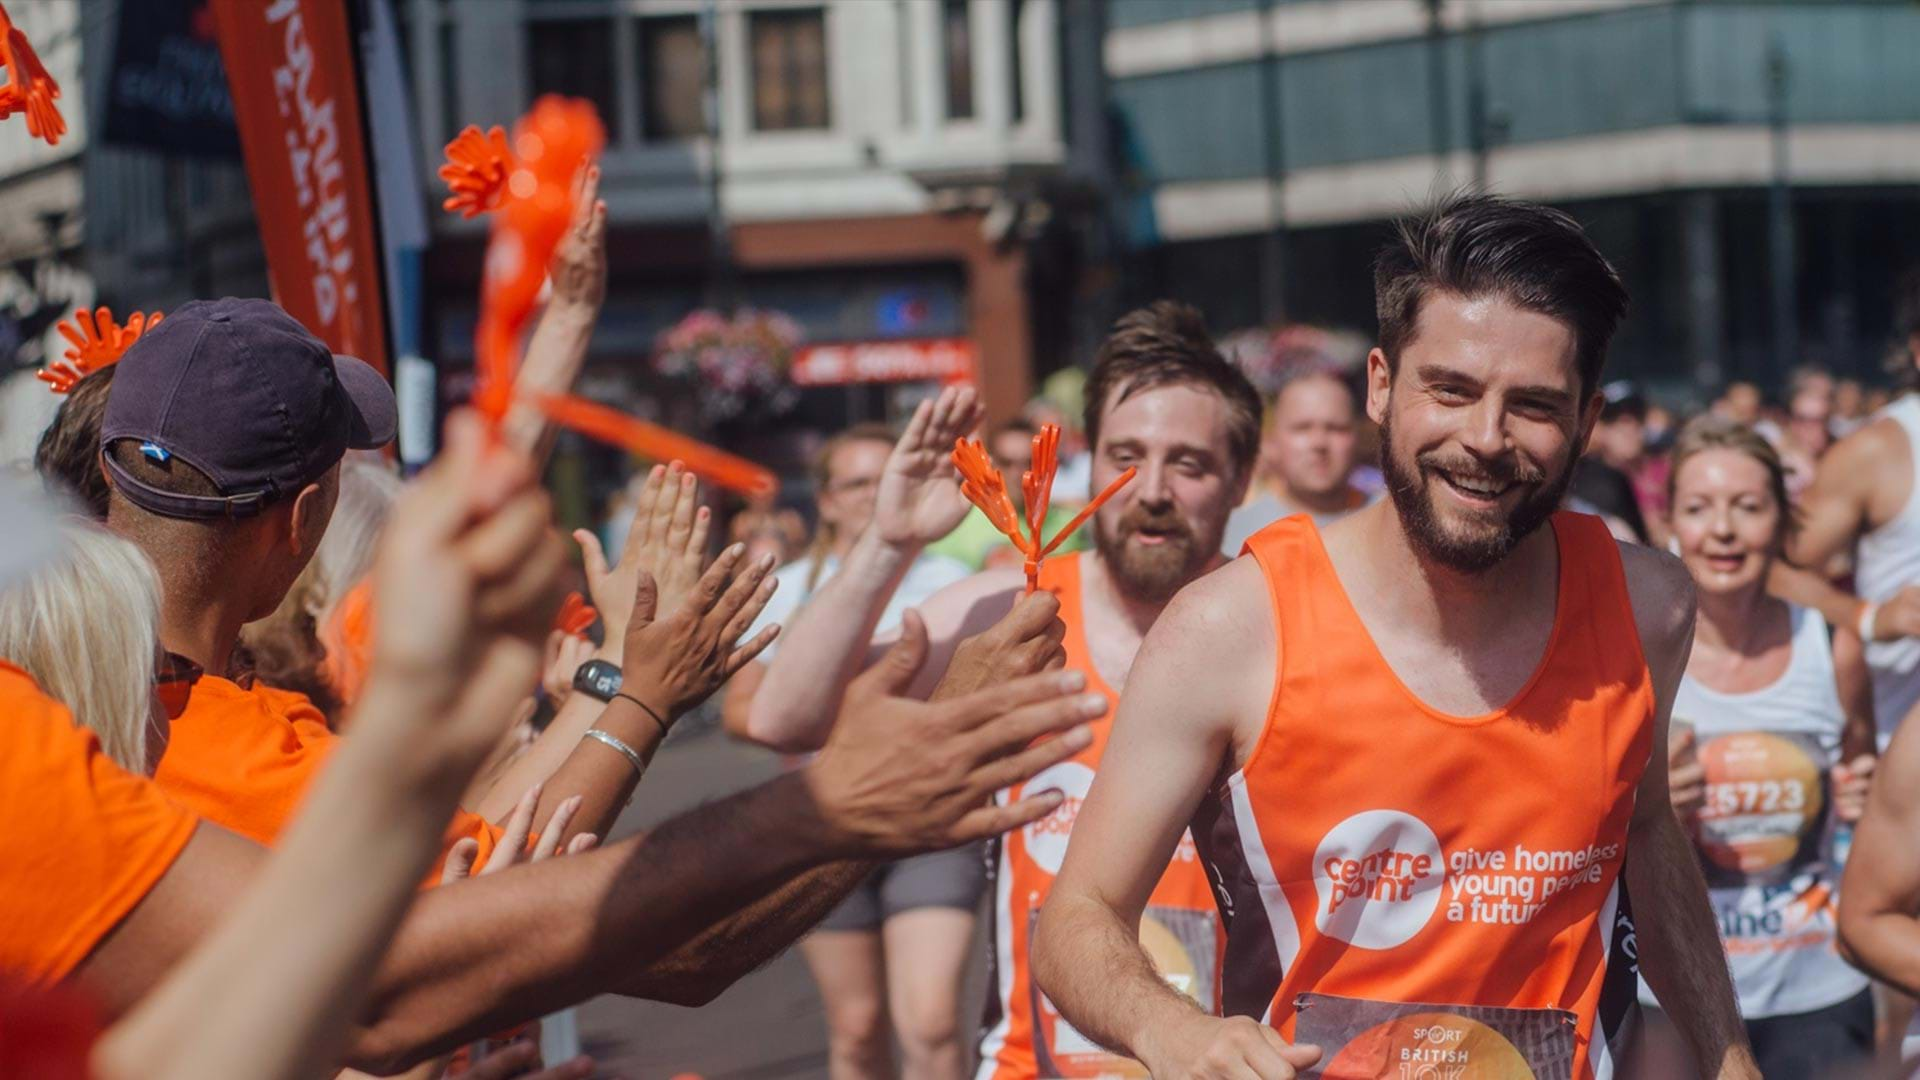 Centrepoint supporter runs the British 10K.